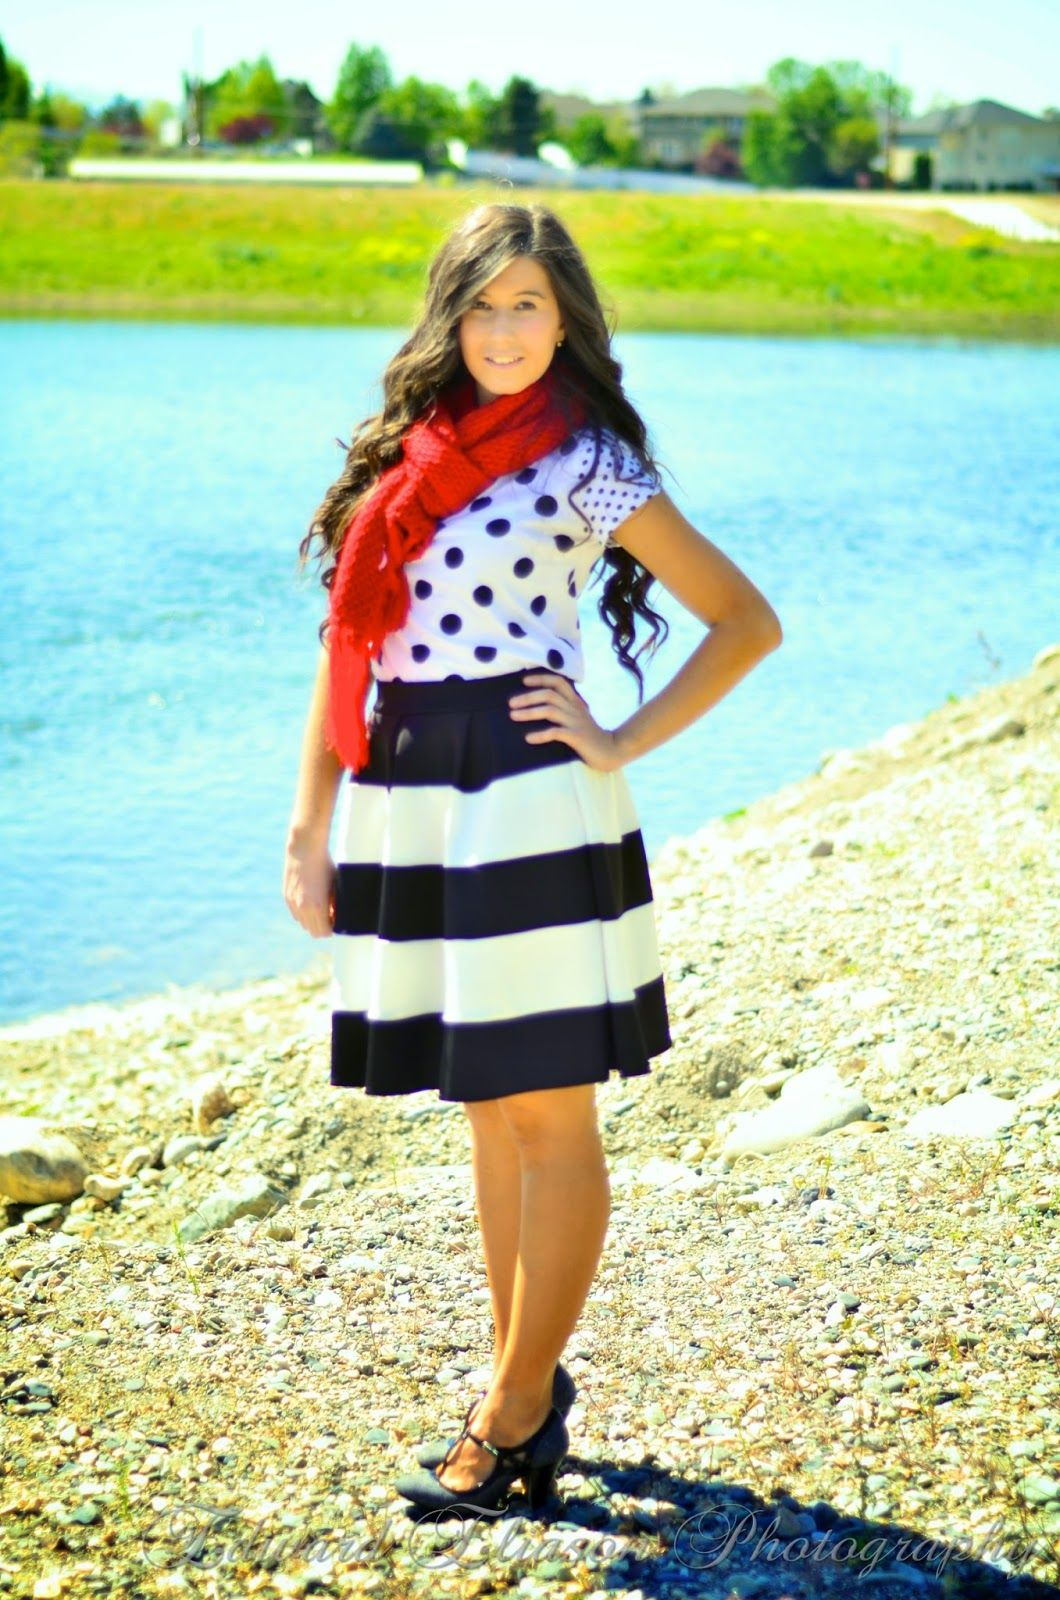 Polka Dot's and Stripes! (striped flared skirt, a line skirt, polka dots and stripes, outfit, preppy, preppy style,)